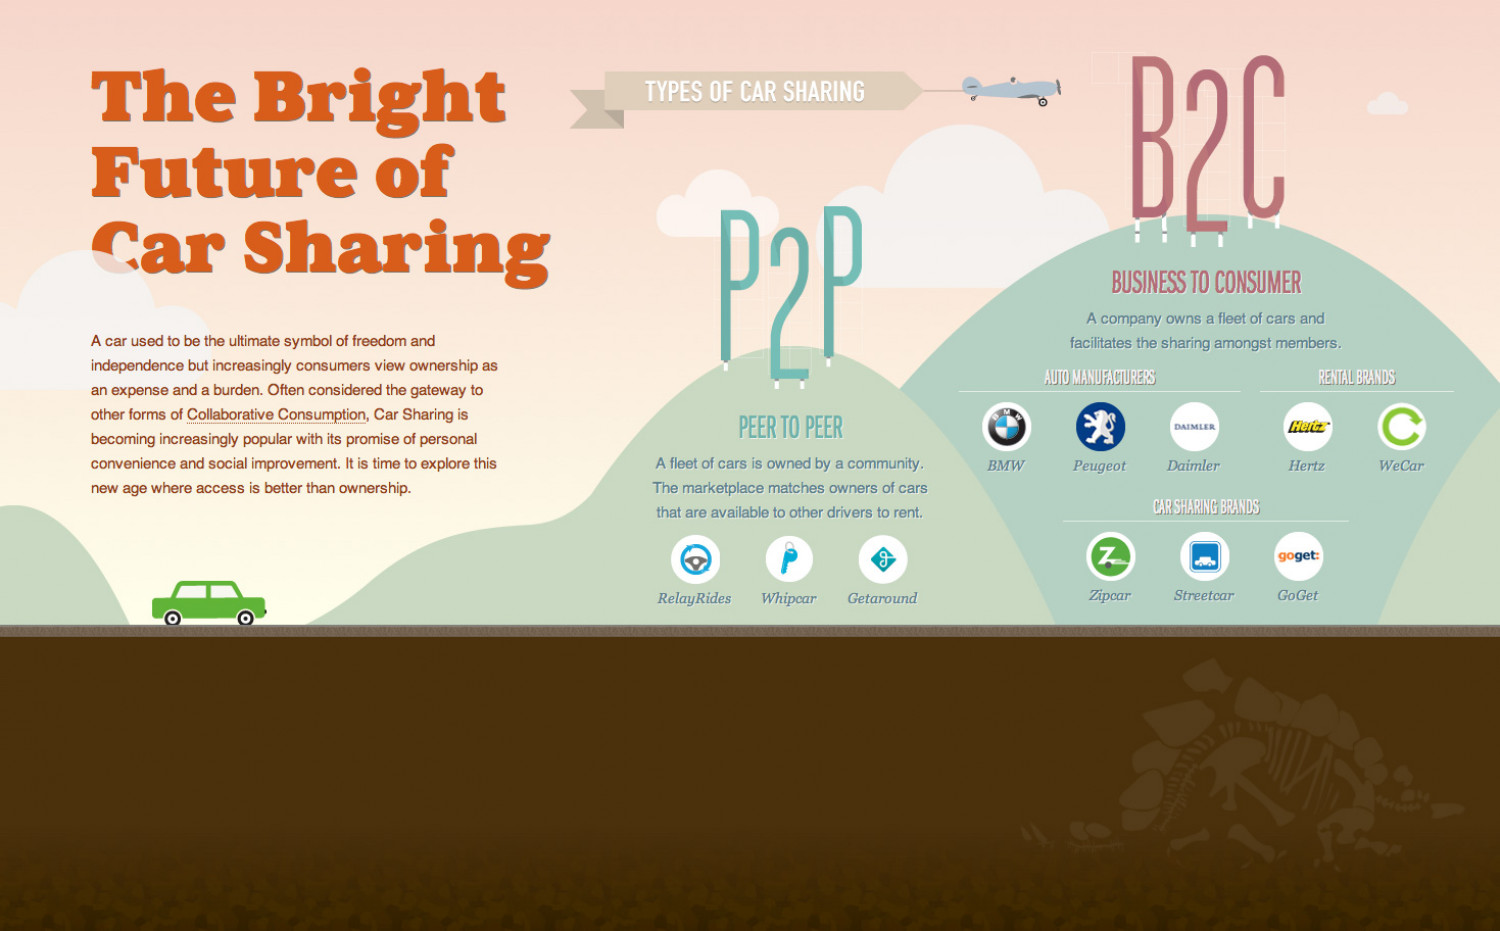 The Bright Future of Car Sharing Infographic